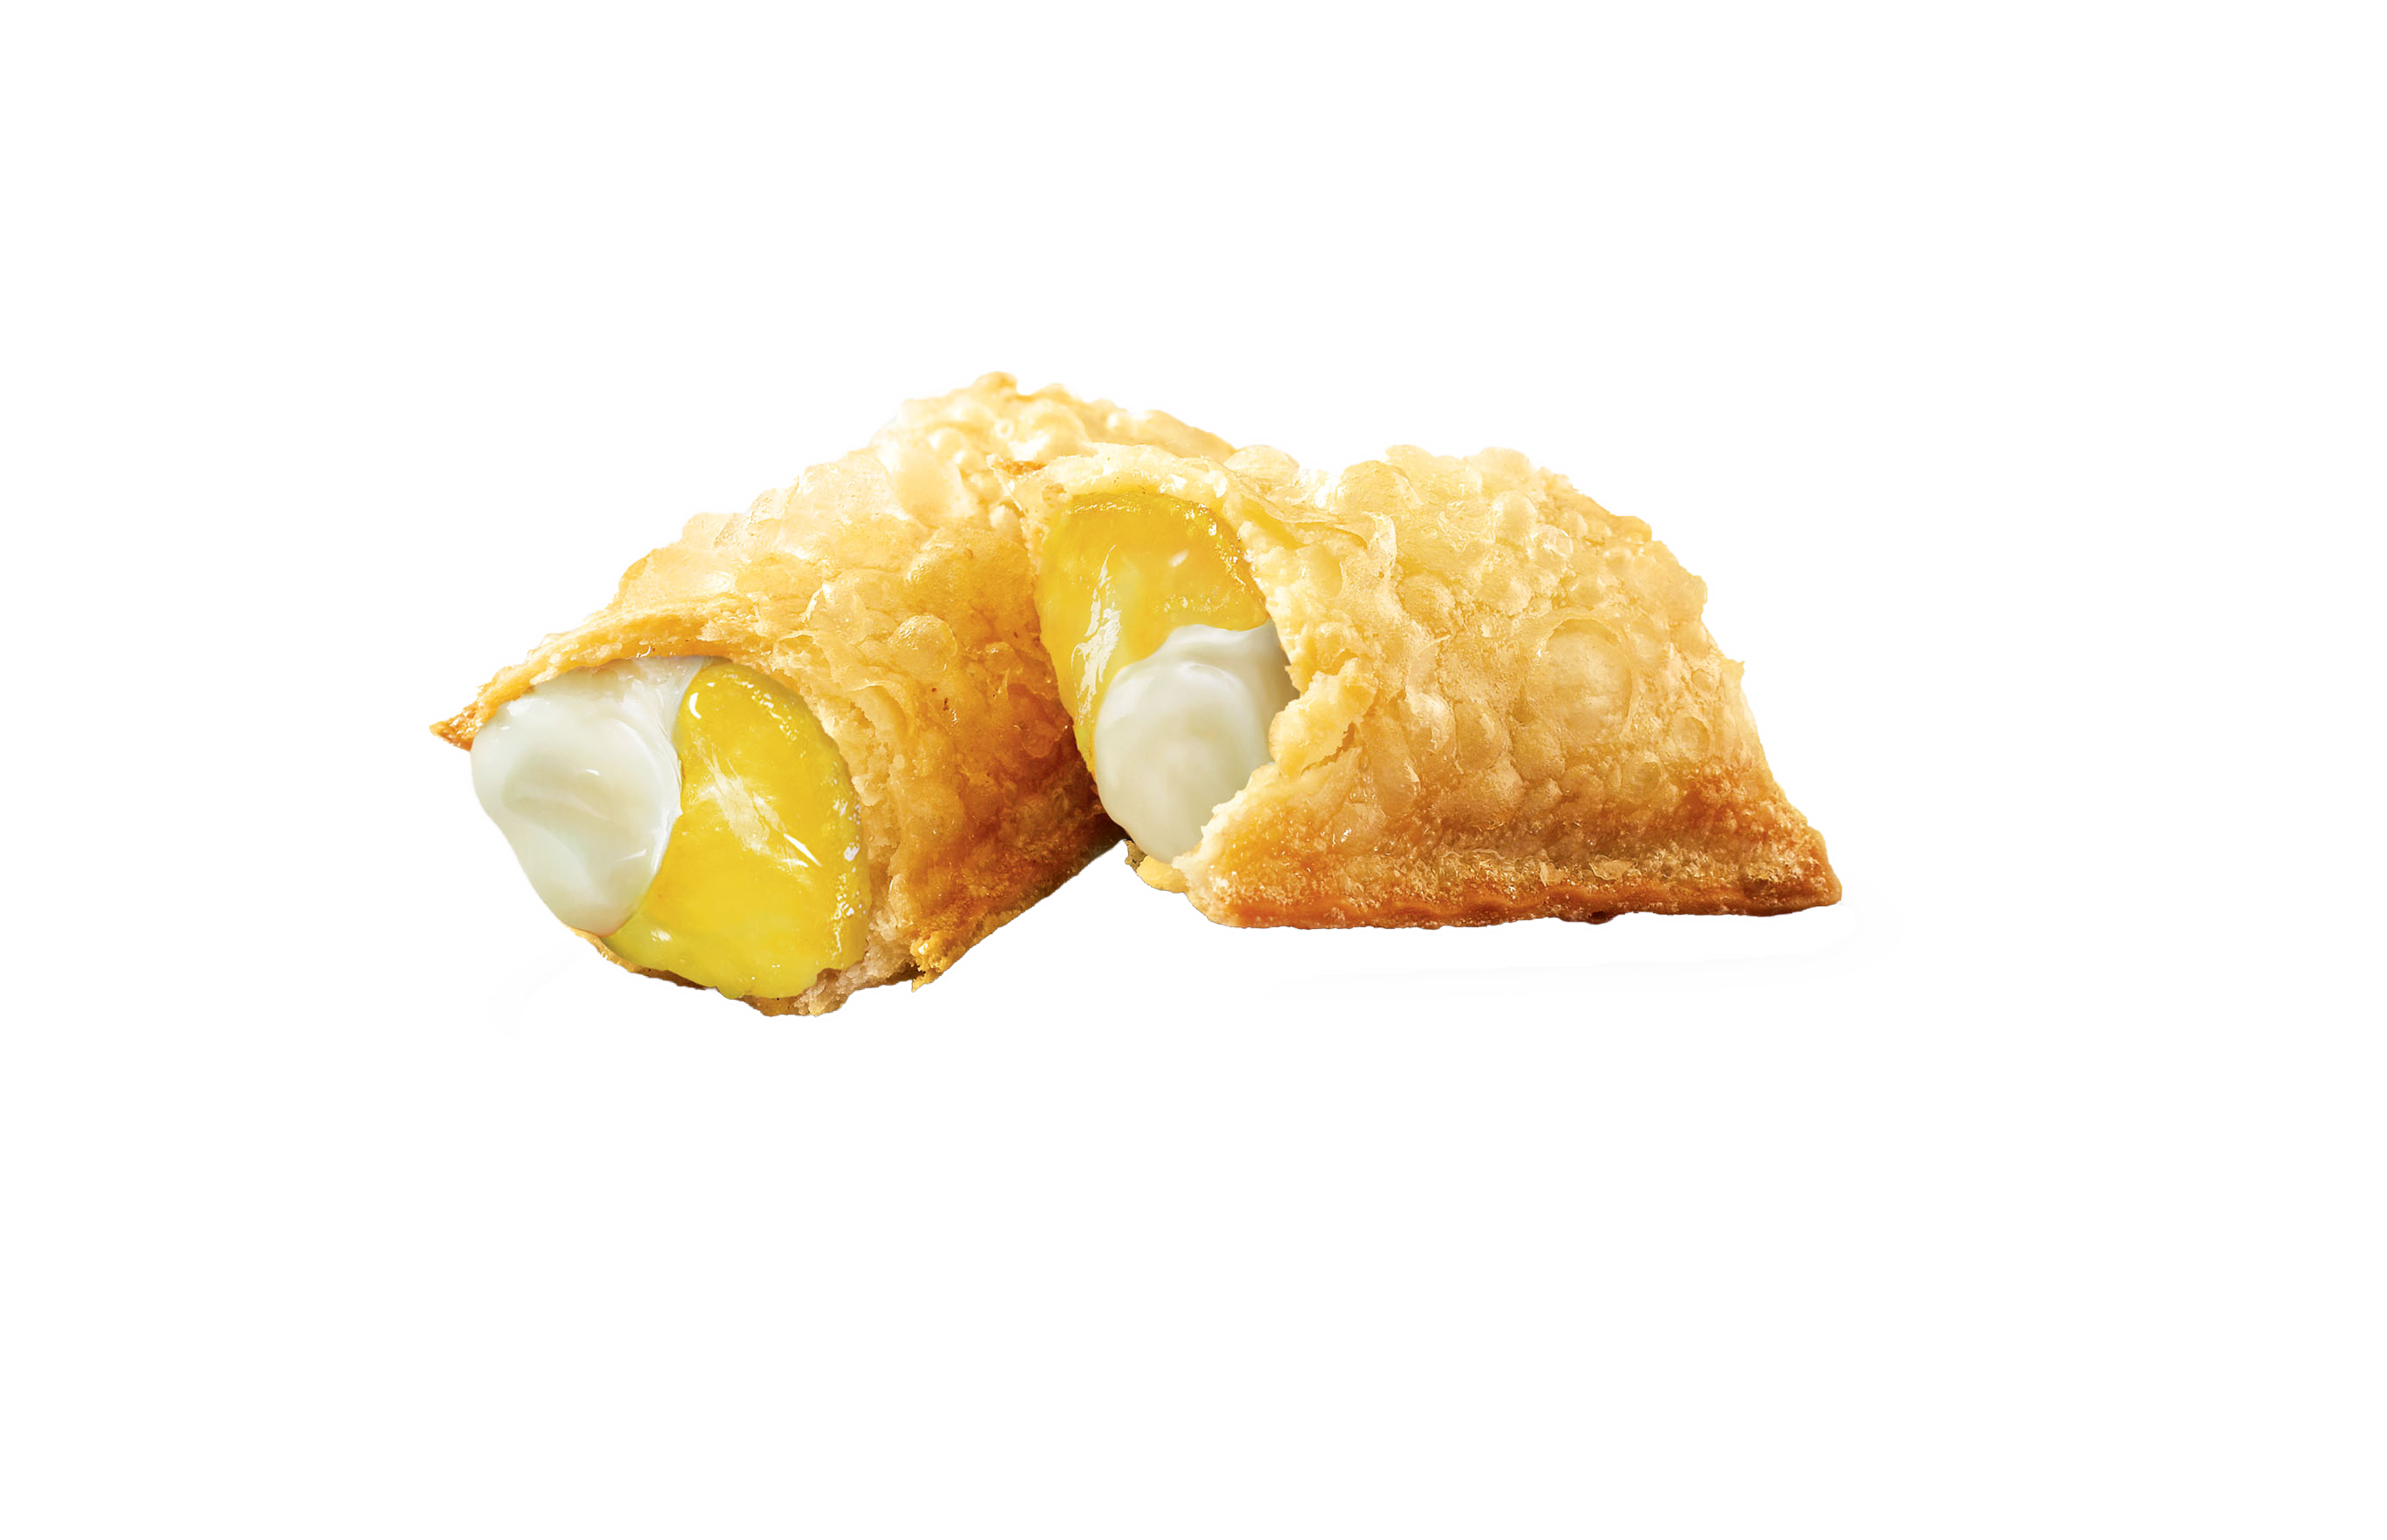 Mcdonald's-Yuzu-Cream-Cheese-Pie